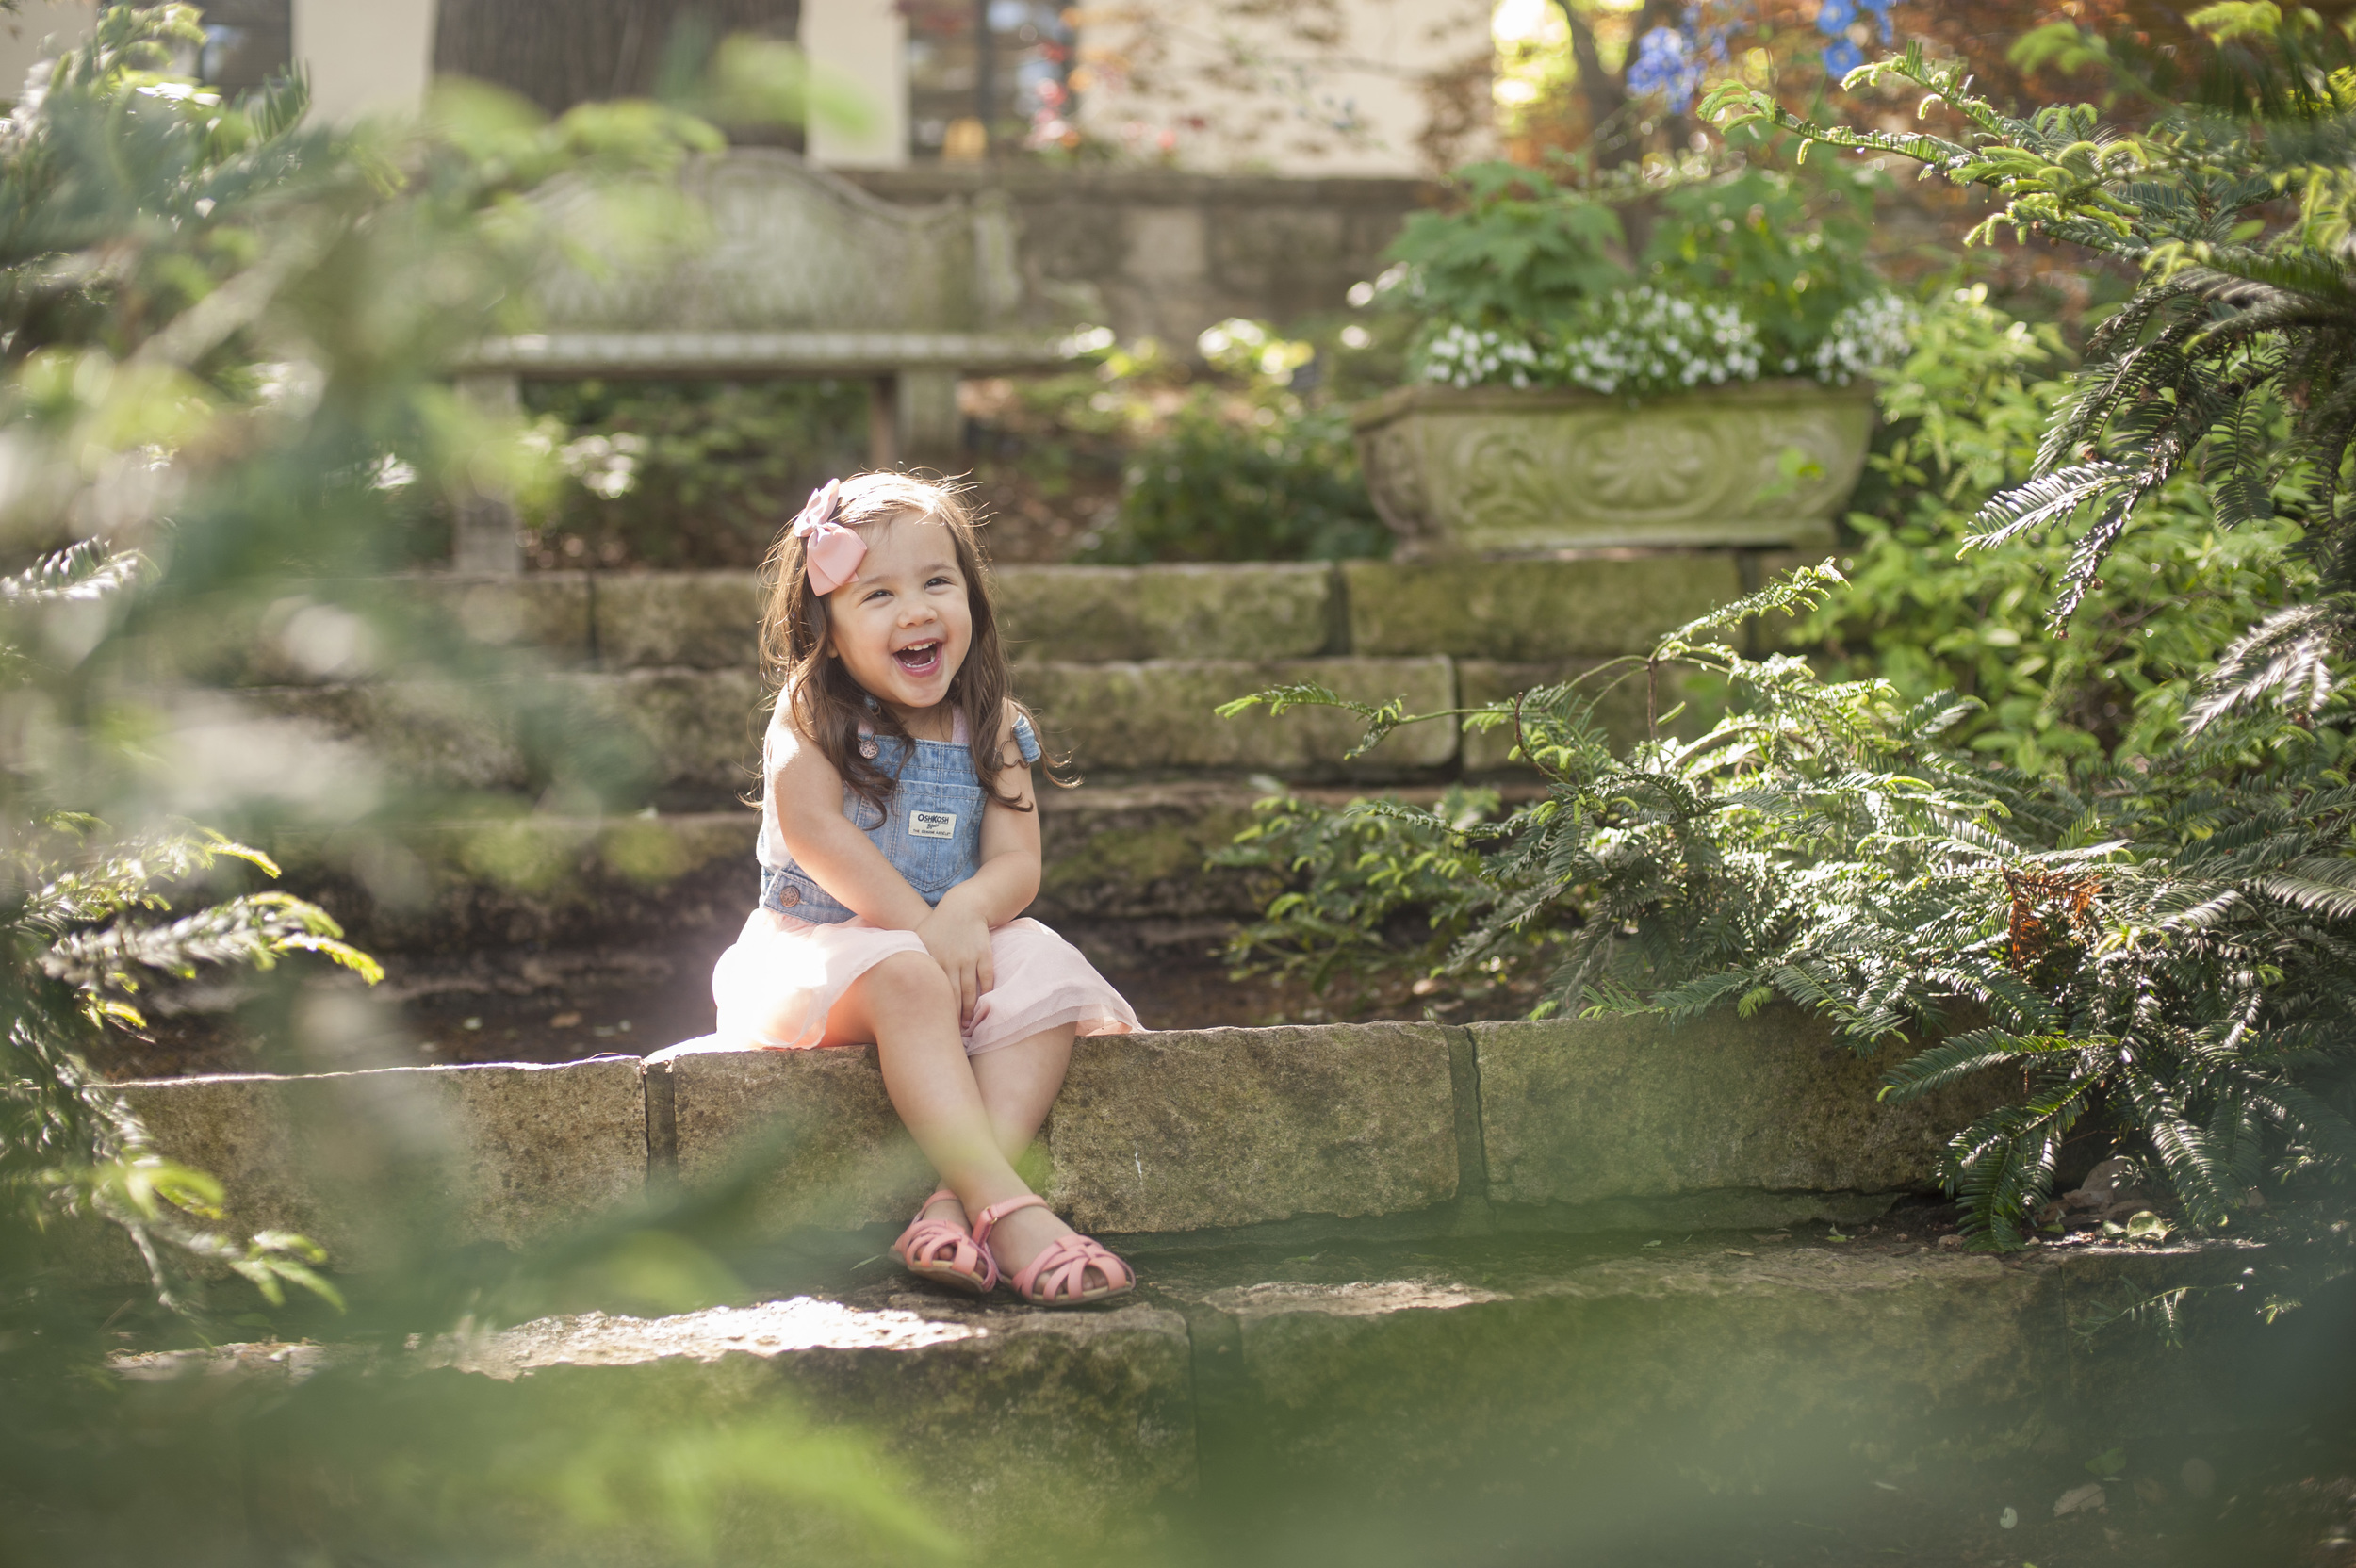 Toddler smiling amidst the greenery. Childrens portraits at the Dallas Arboretum.